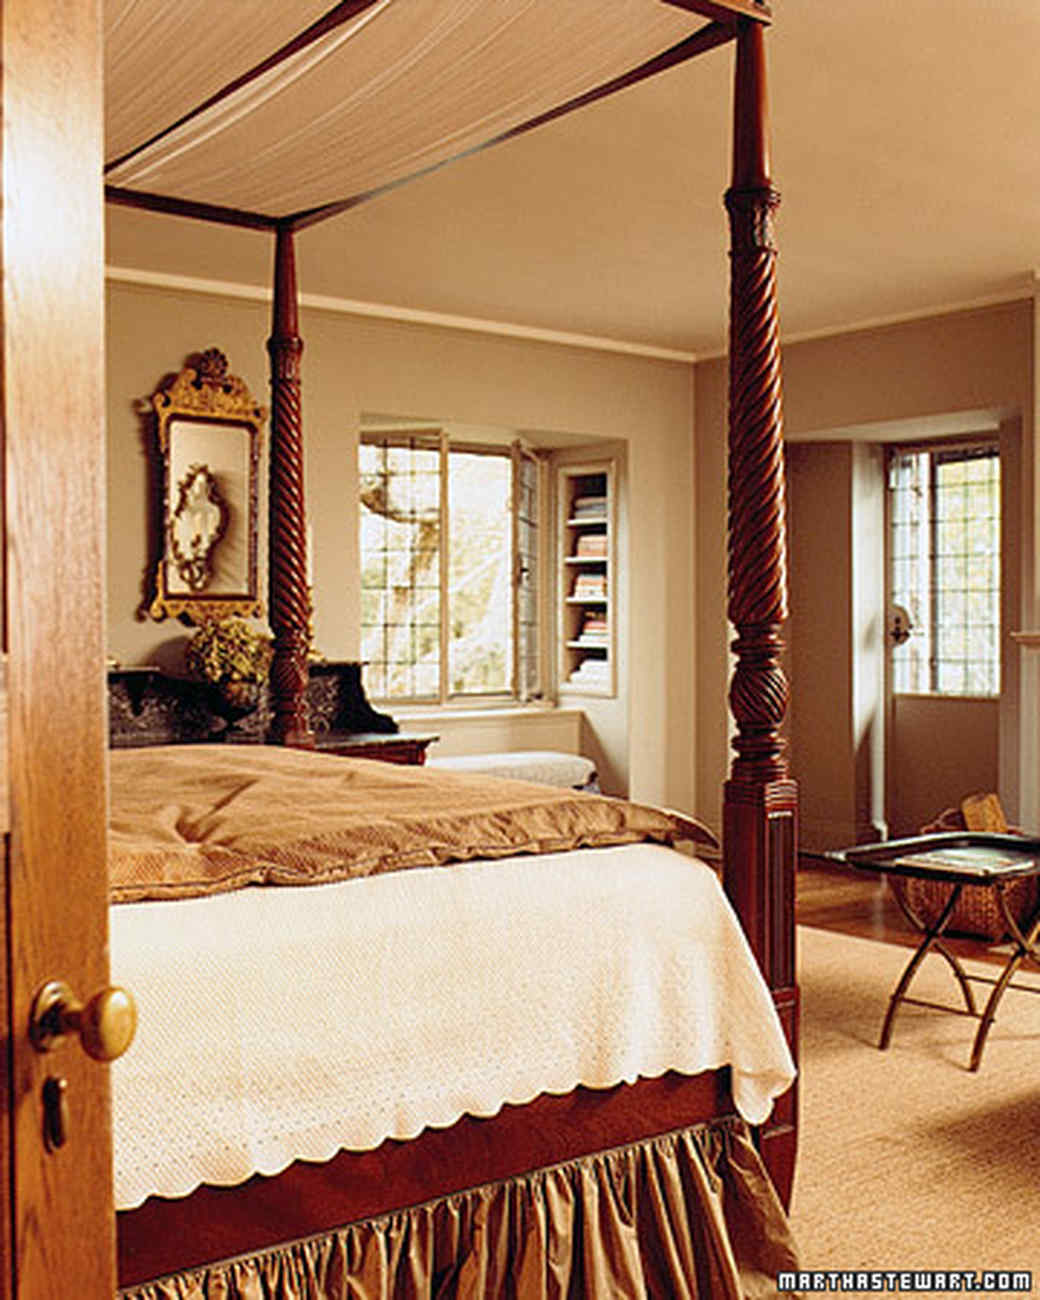 Bedroom Decorating Ideas Earth Tones bedroom decorating ideas | martha stewart